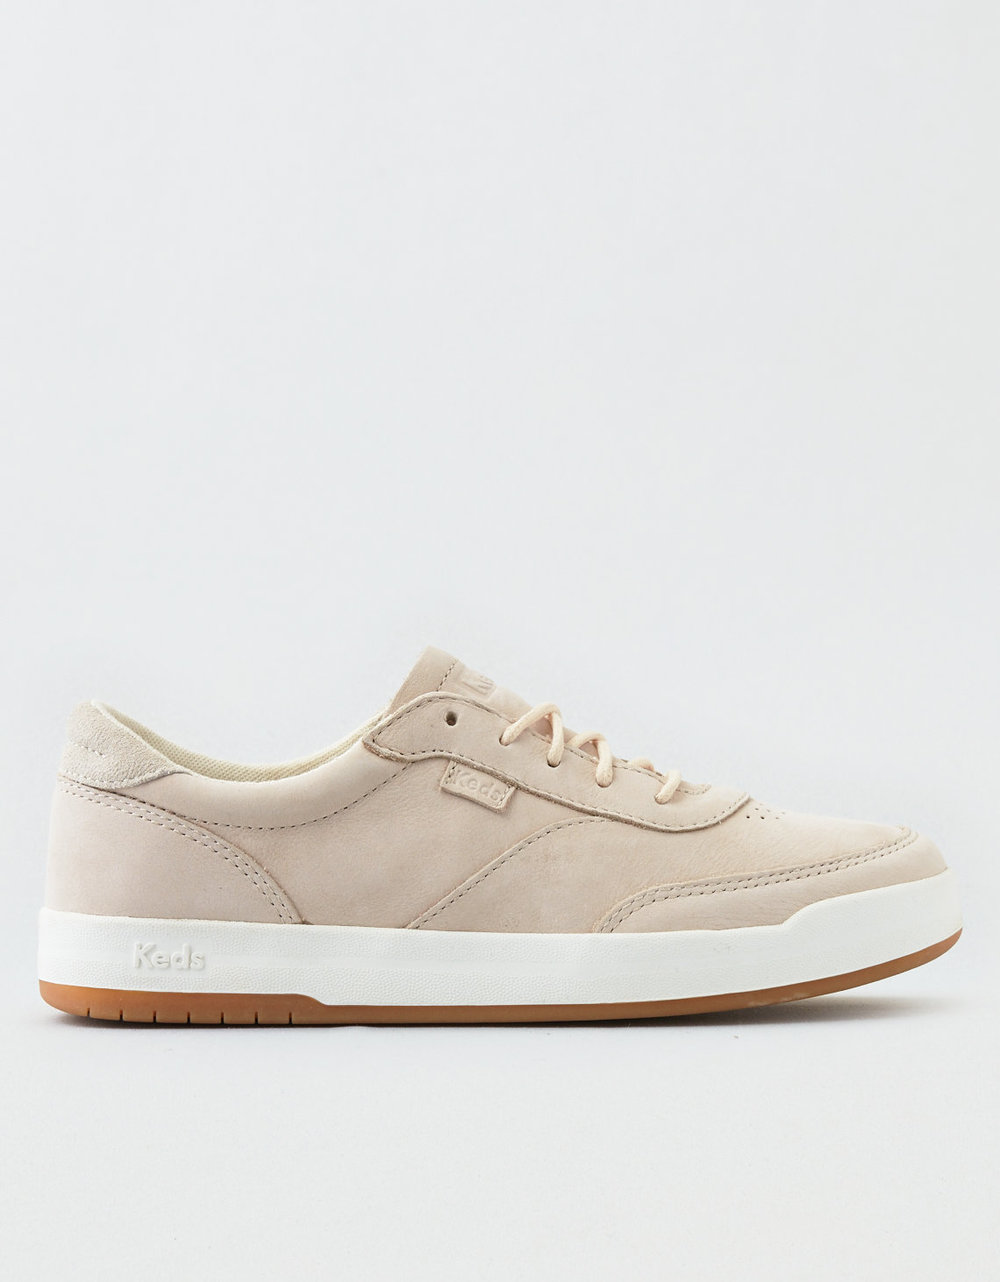 KEDS MATCH POINT NUBUCK SNEAKER $80